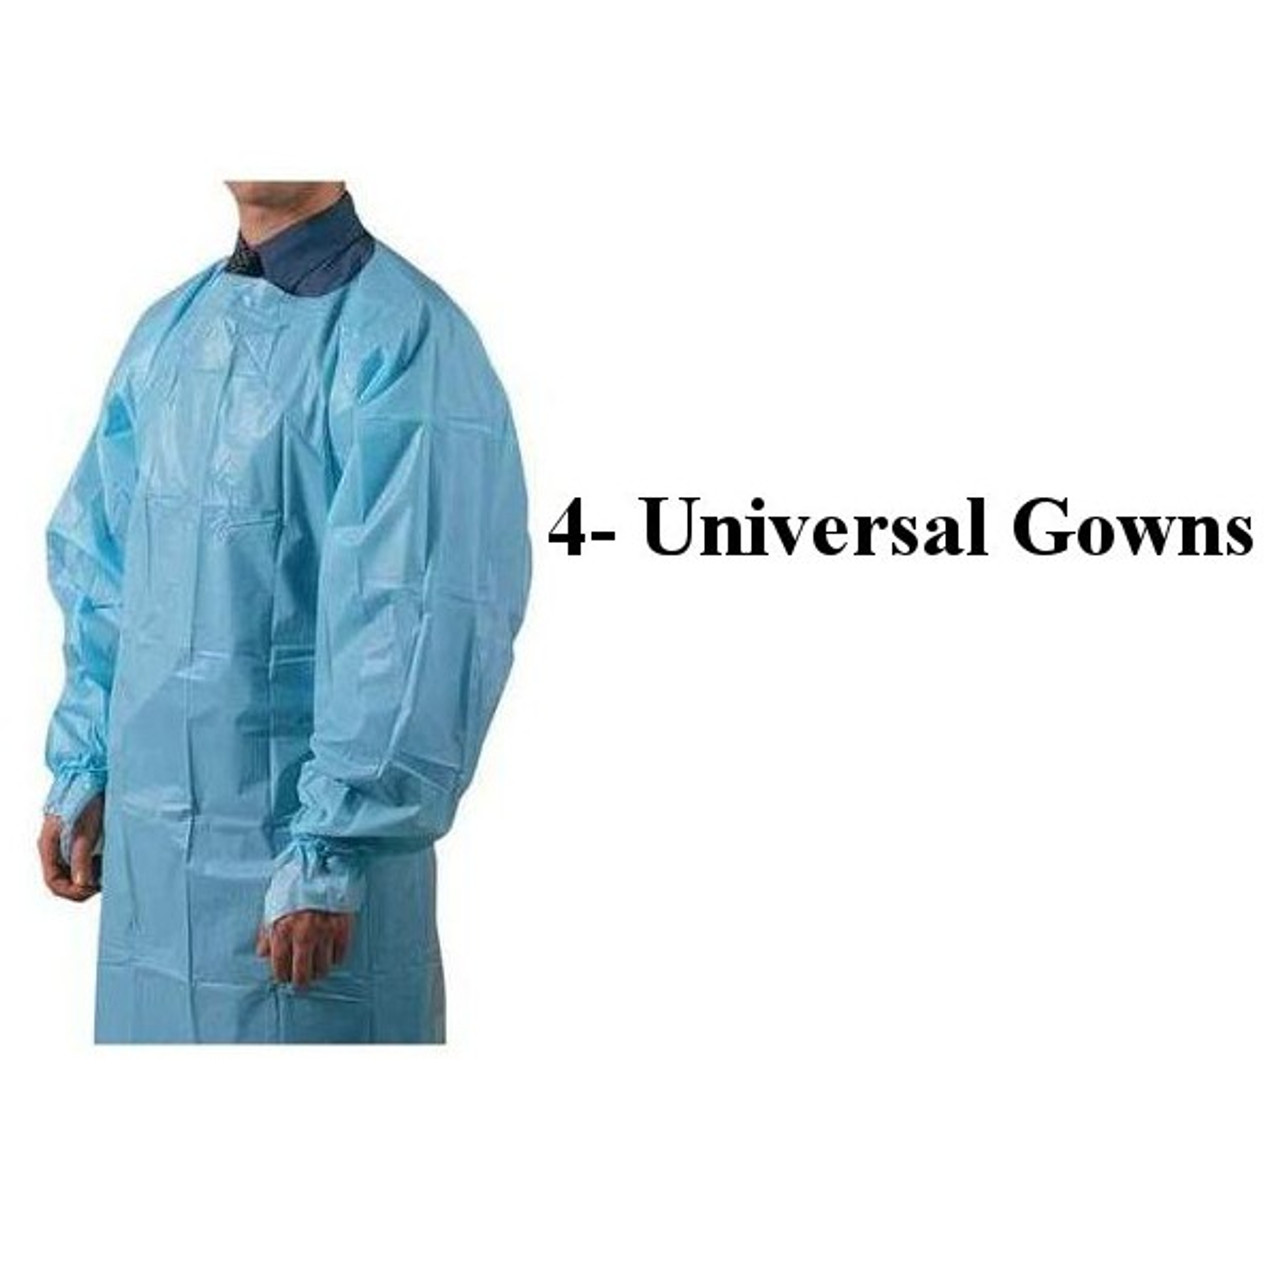 Universal PPE Gowns